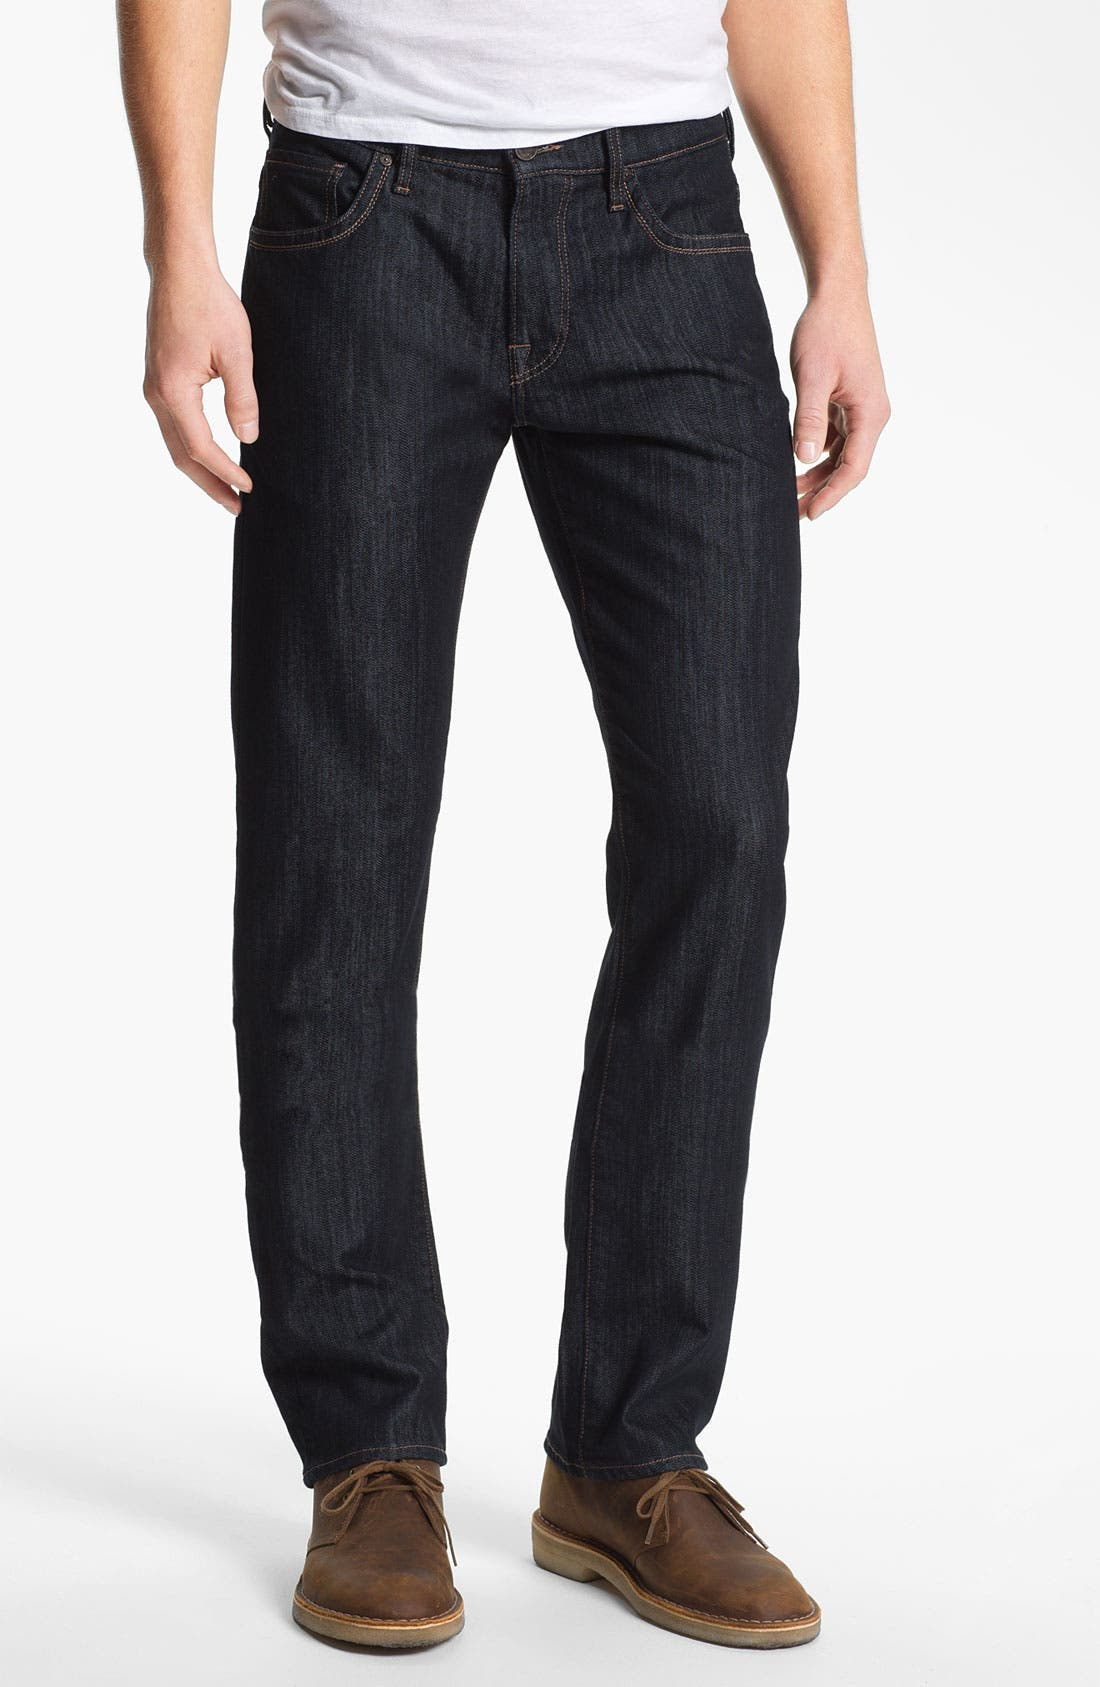 'Courage' Straight Leg Jeans,                             Main thumbnail 1, color,                             425